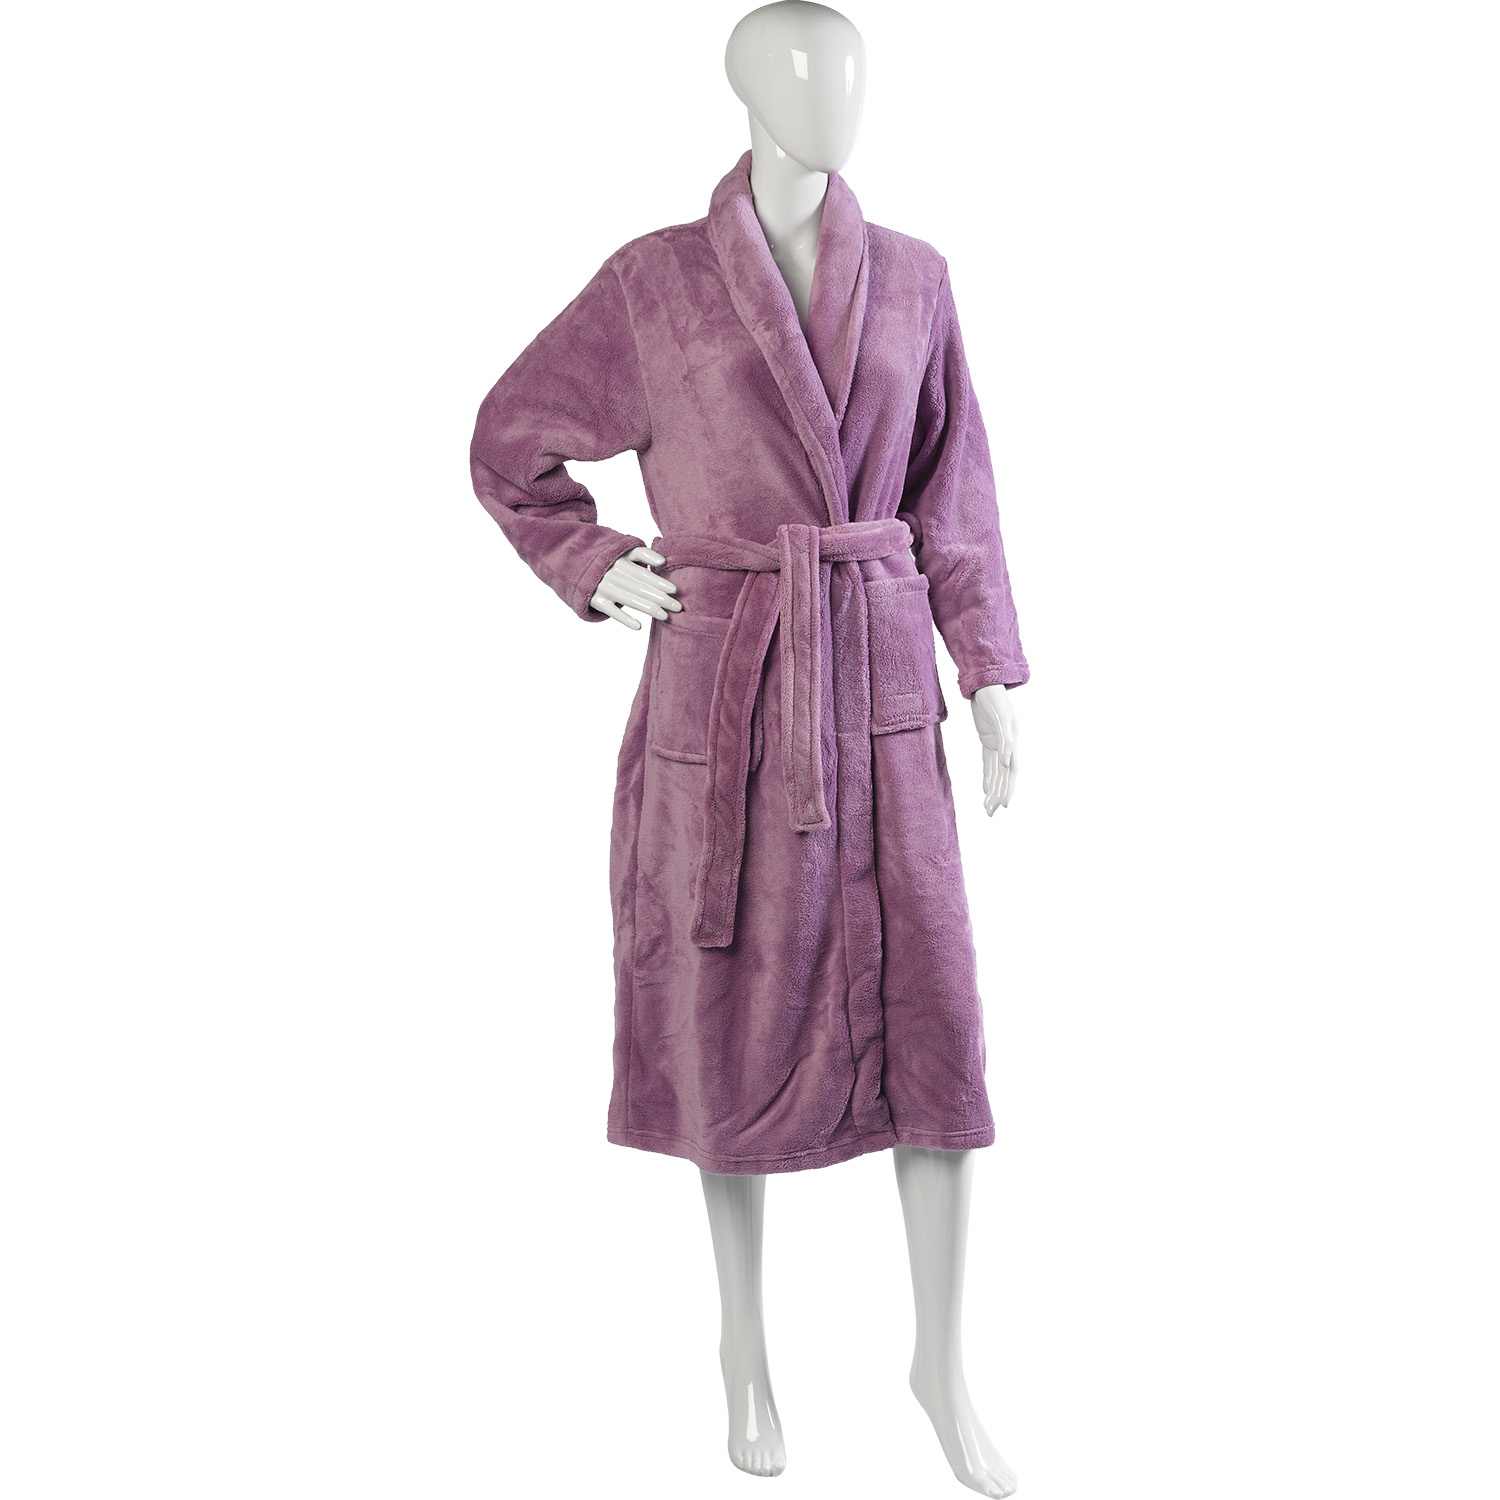 House Coat: Slenderella Thick Soft Fleece Shawl Collar Dressing Gown